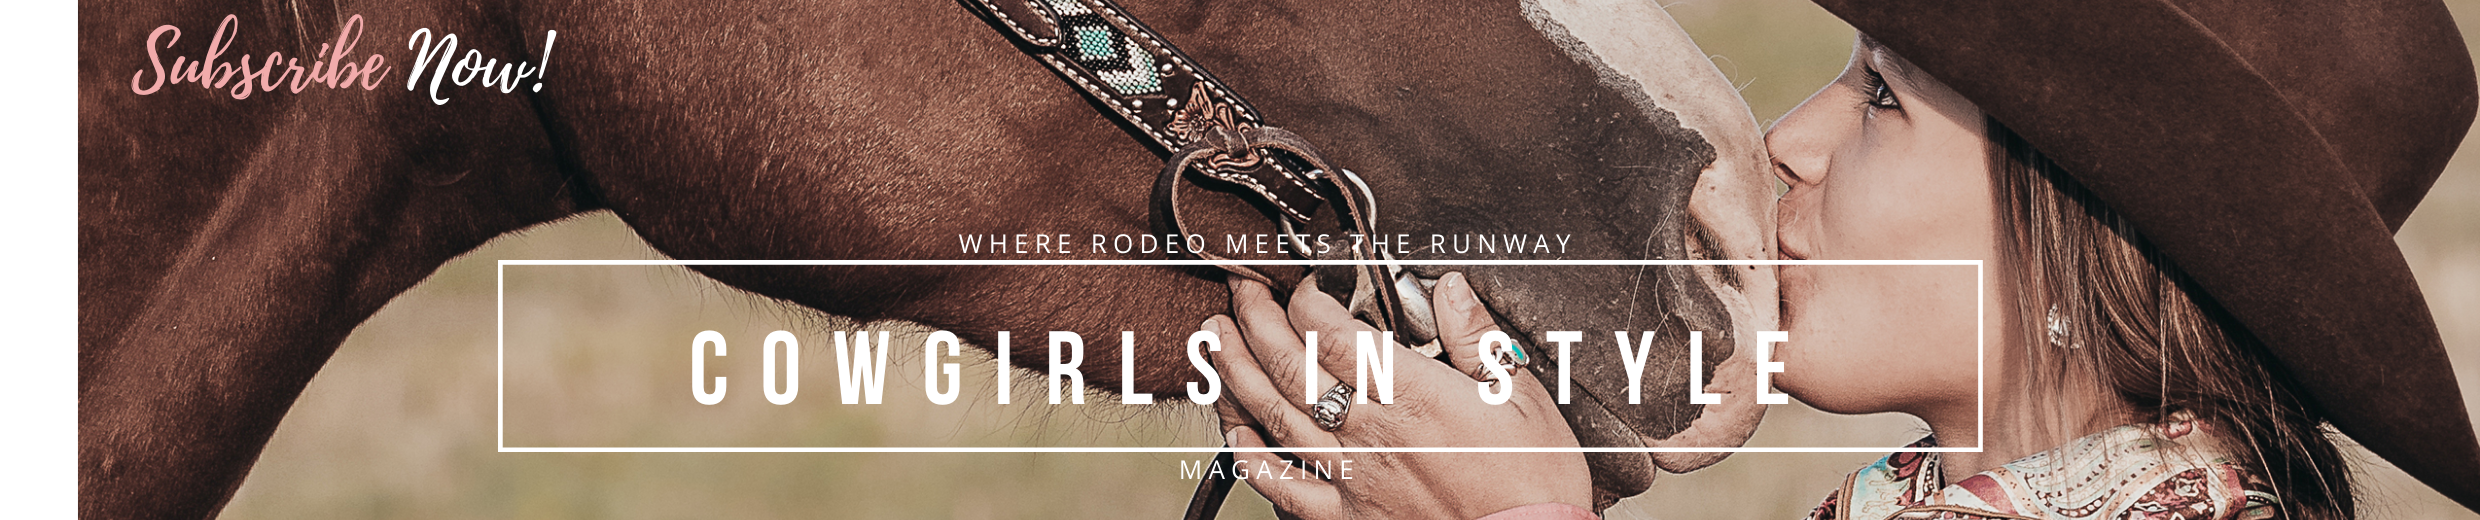 June 2020 - Cowgirls In Style Magazine